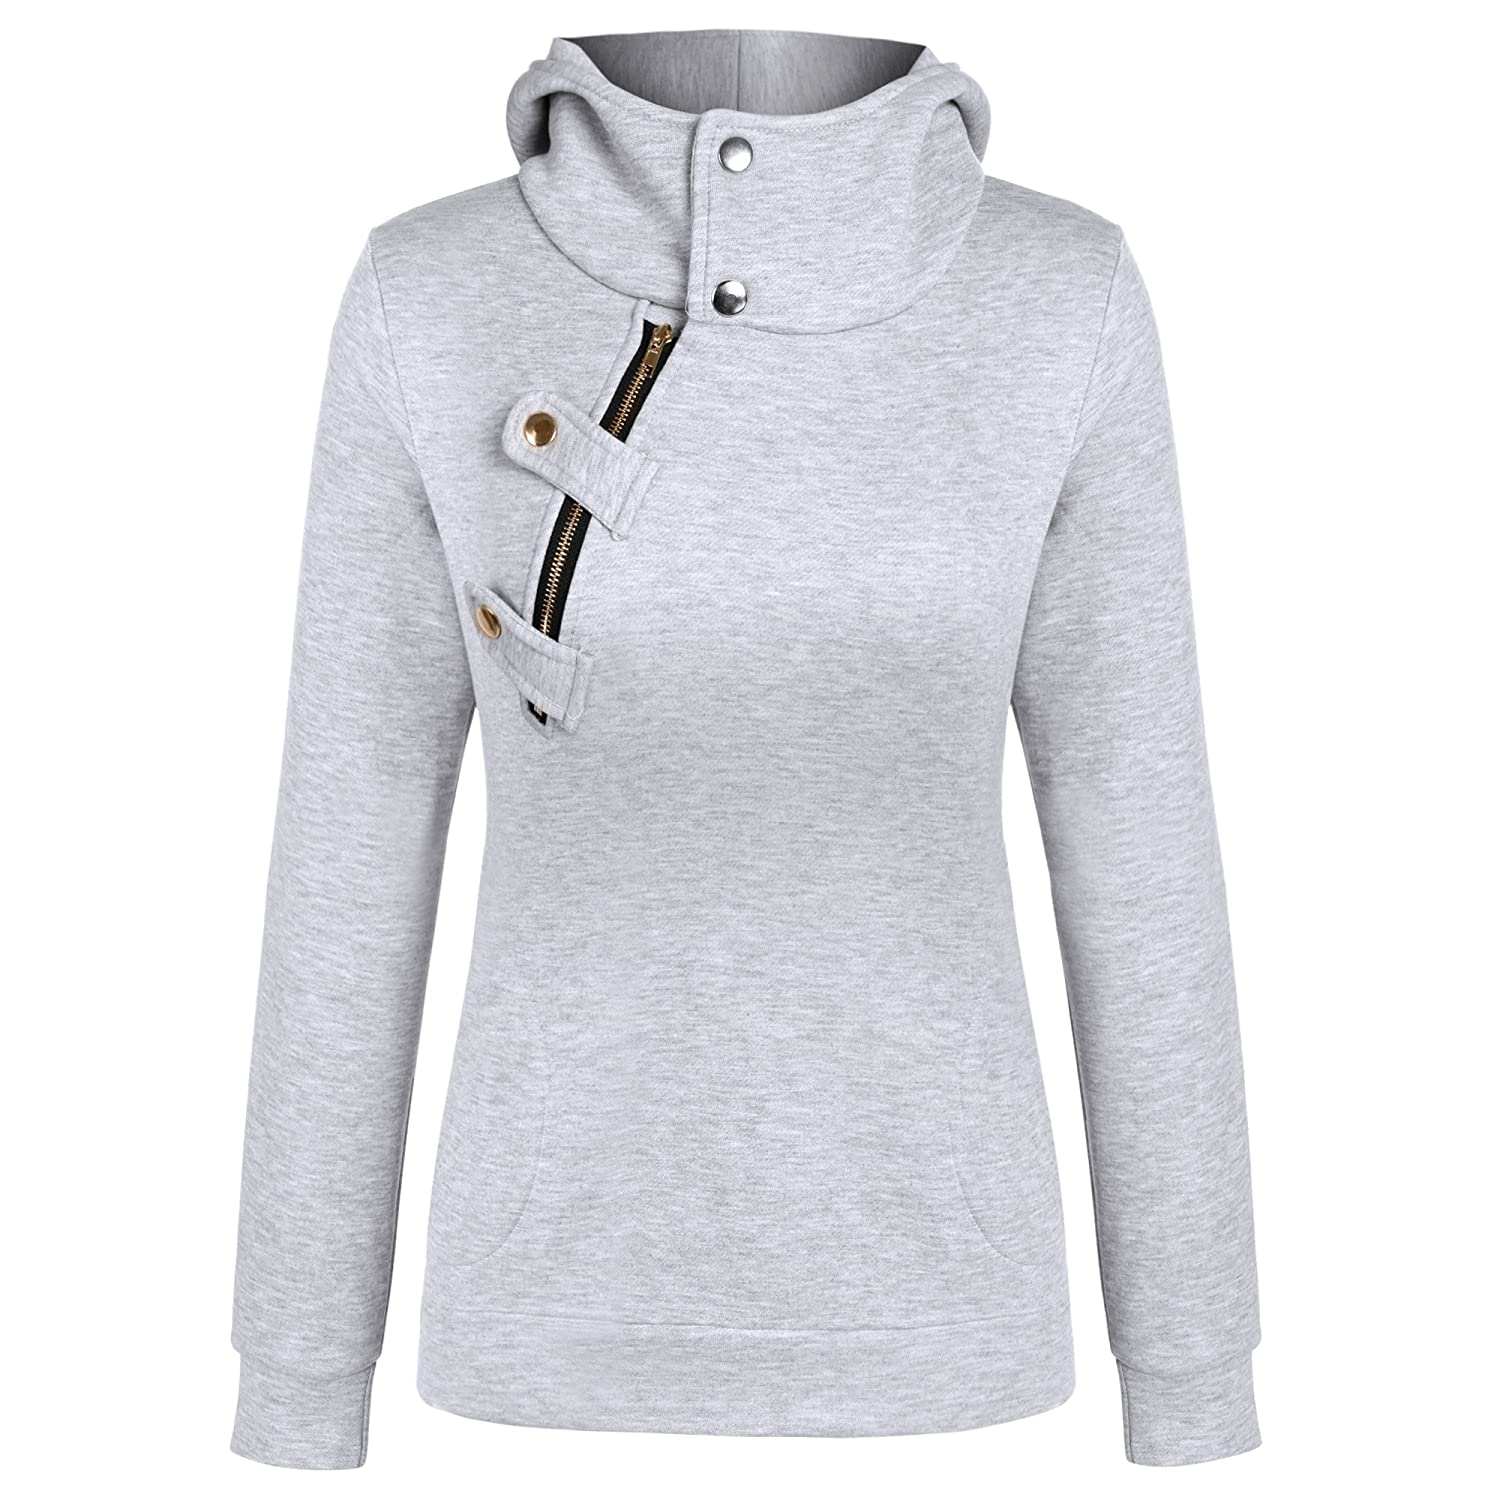 Meaneor Women's Long Sleeve Hoodie Coat Jacket Top Hooded Jumper Sweatshirt Gray